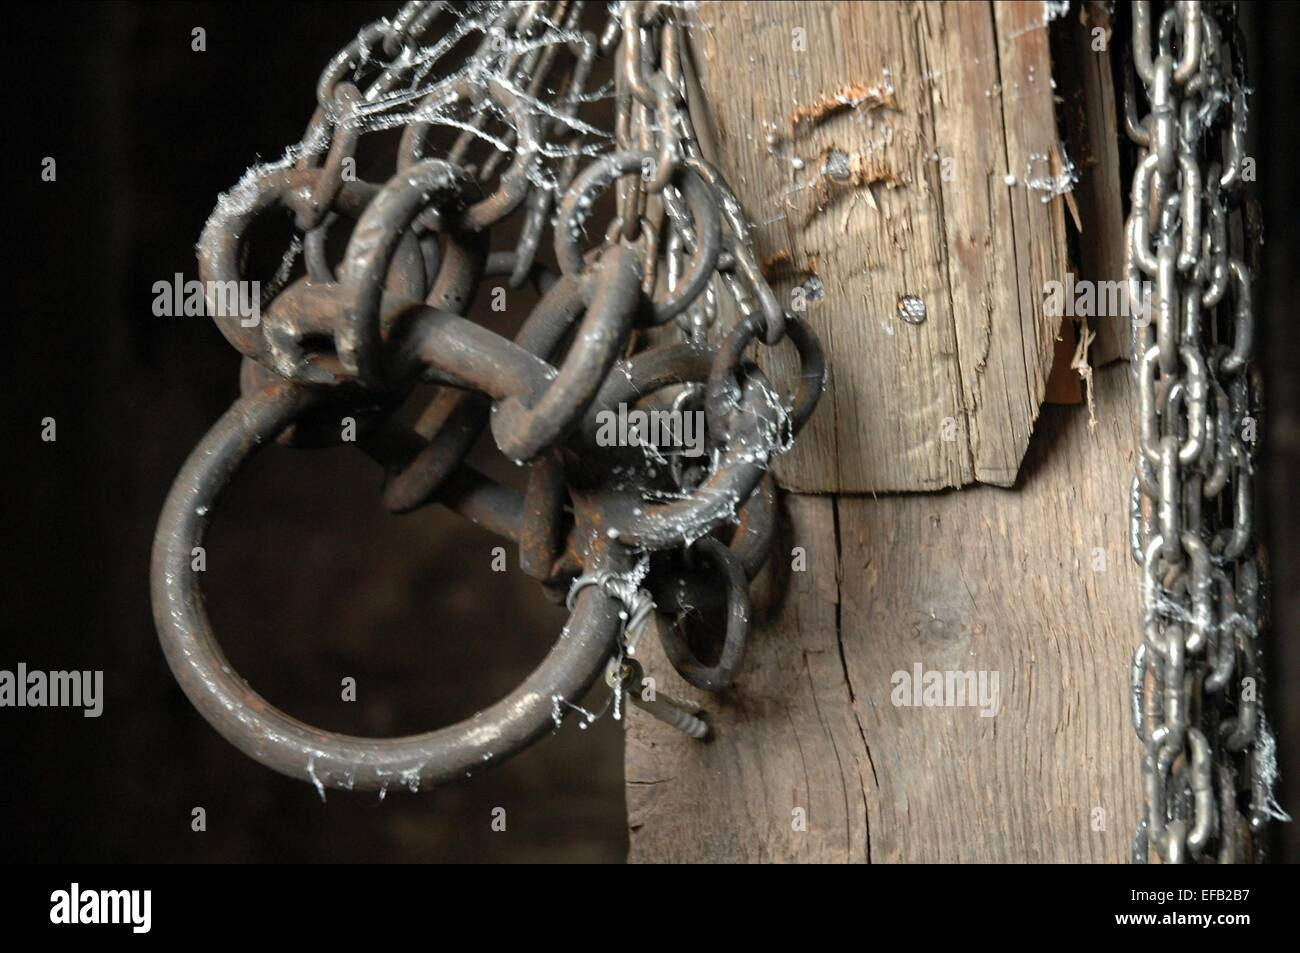 CHAINS TIMBER FALLS (2007) - Stock Image